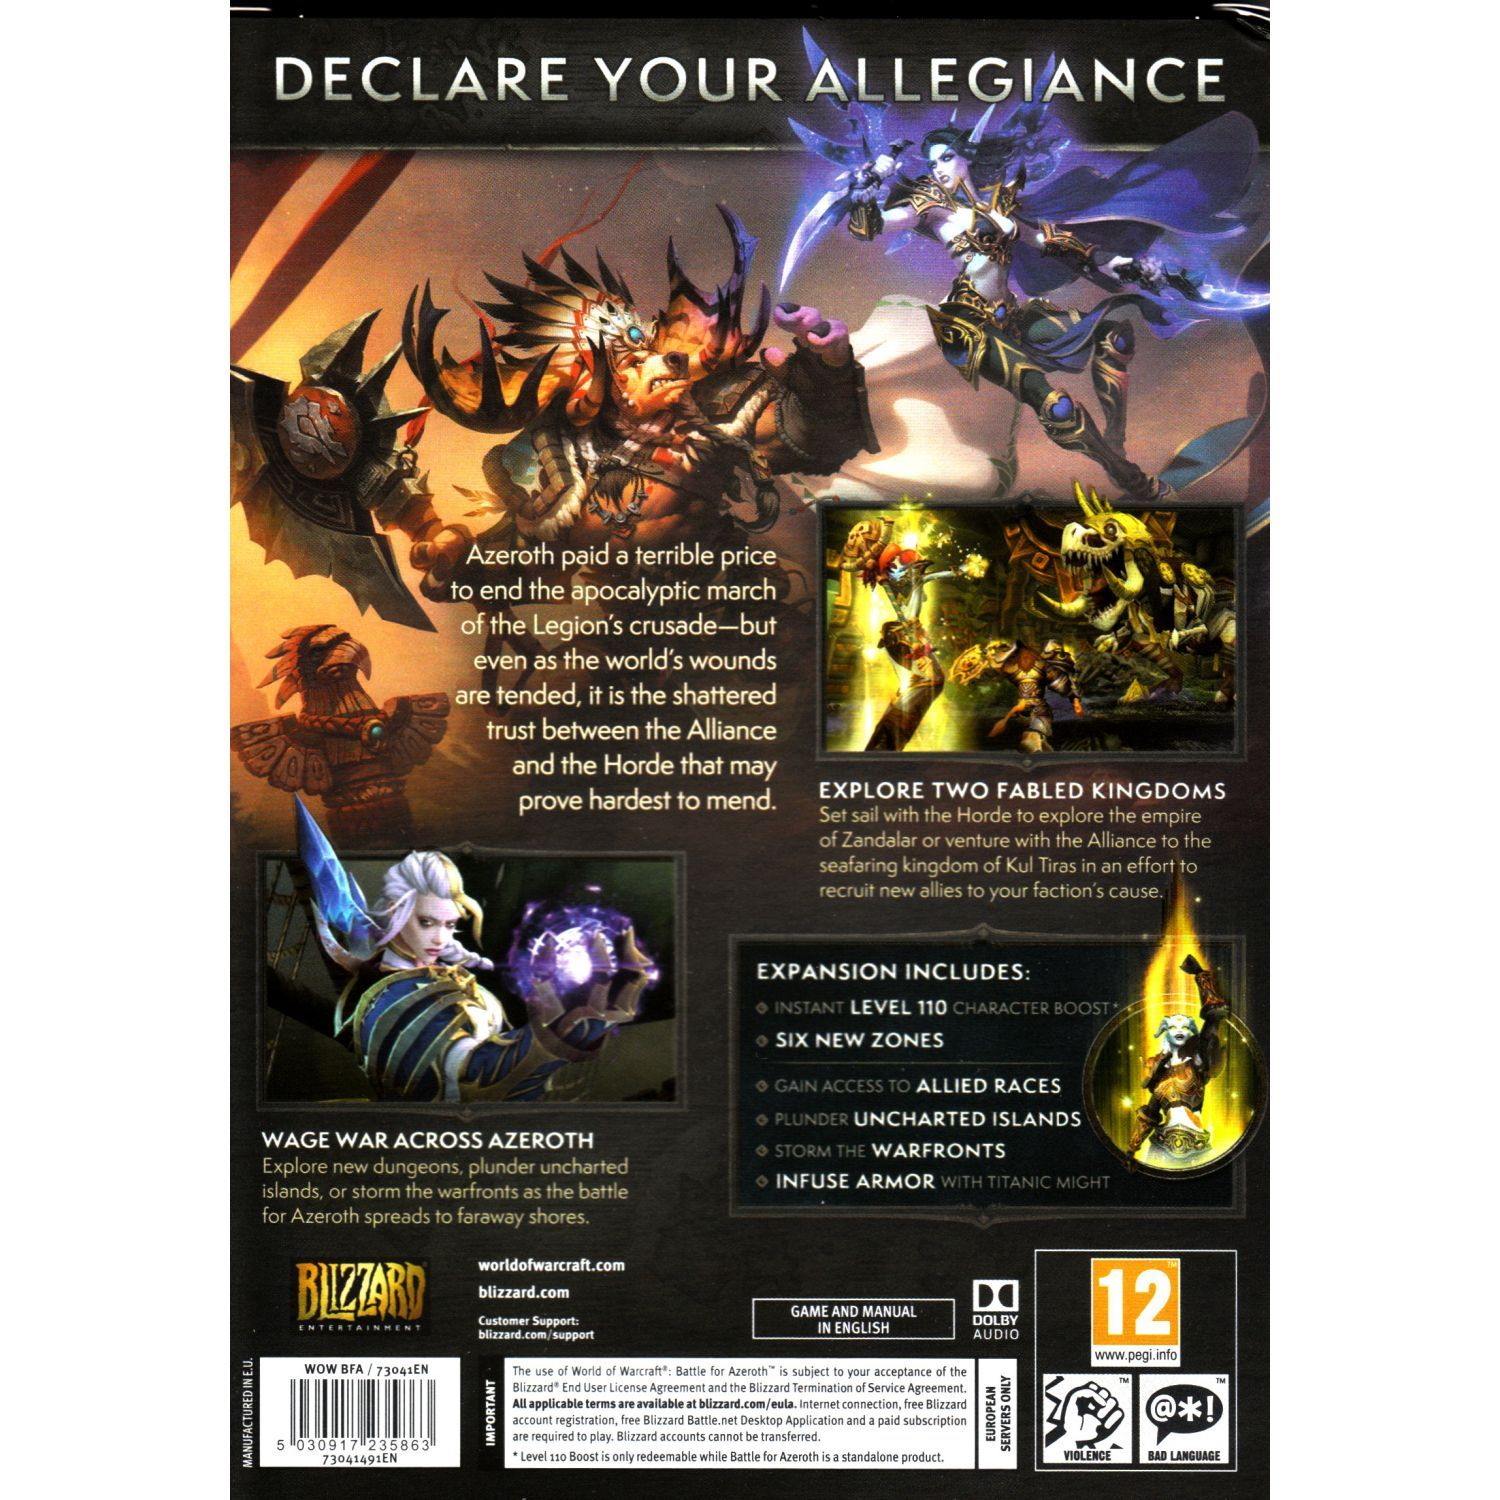 WORLD OF WARCRAFT: BATTLE FOR AZEROTH - Standard Edition (PC) | HD